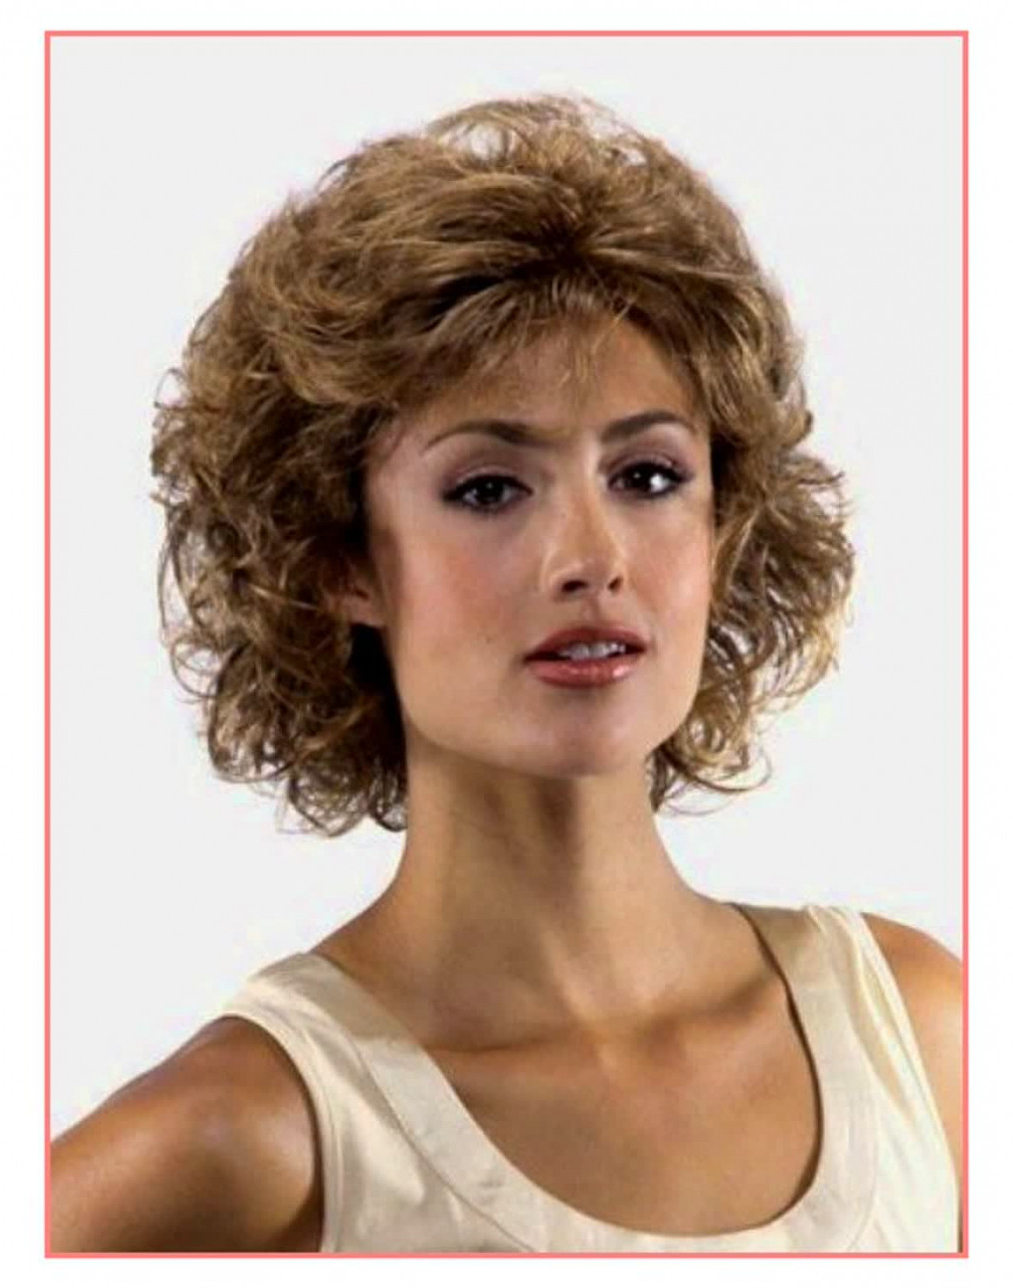 Haircuts For Curly Hair And Square Faces | Hairstyles And Haircuts Inside Short Haircuts For Square Face (View 11 of 25)